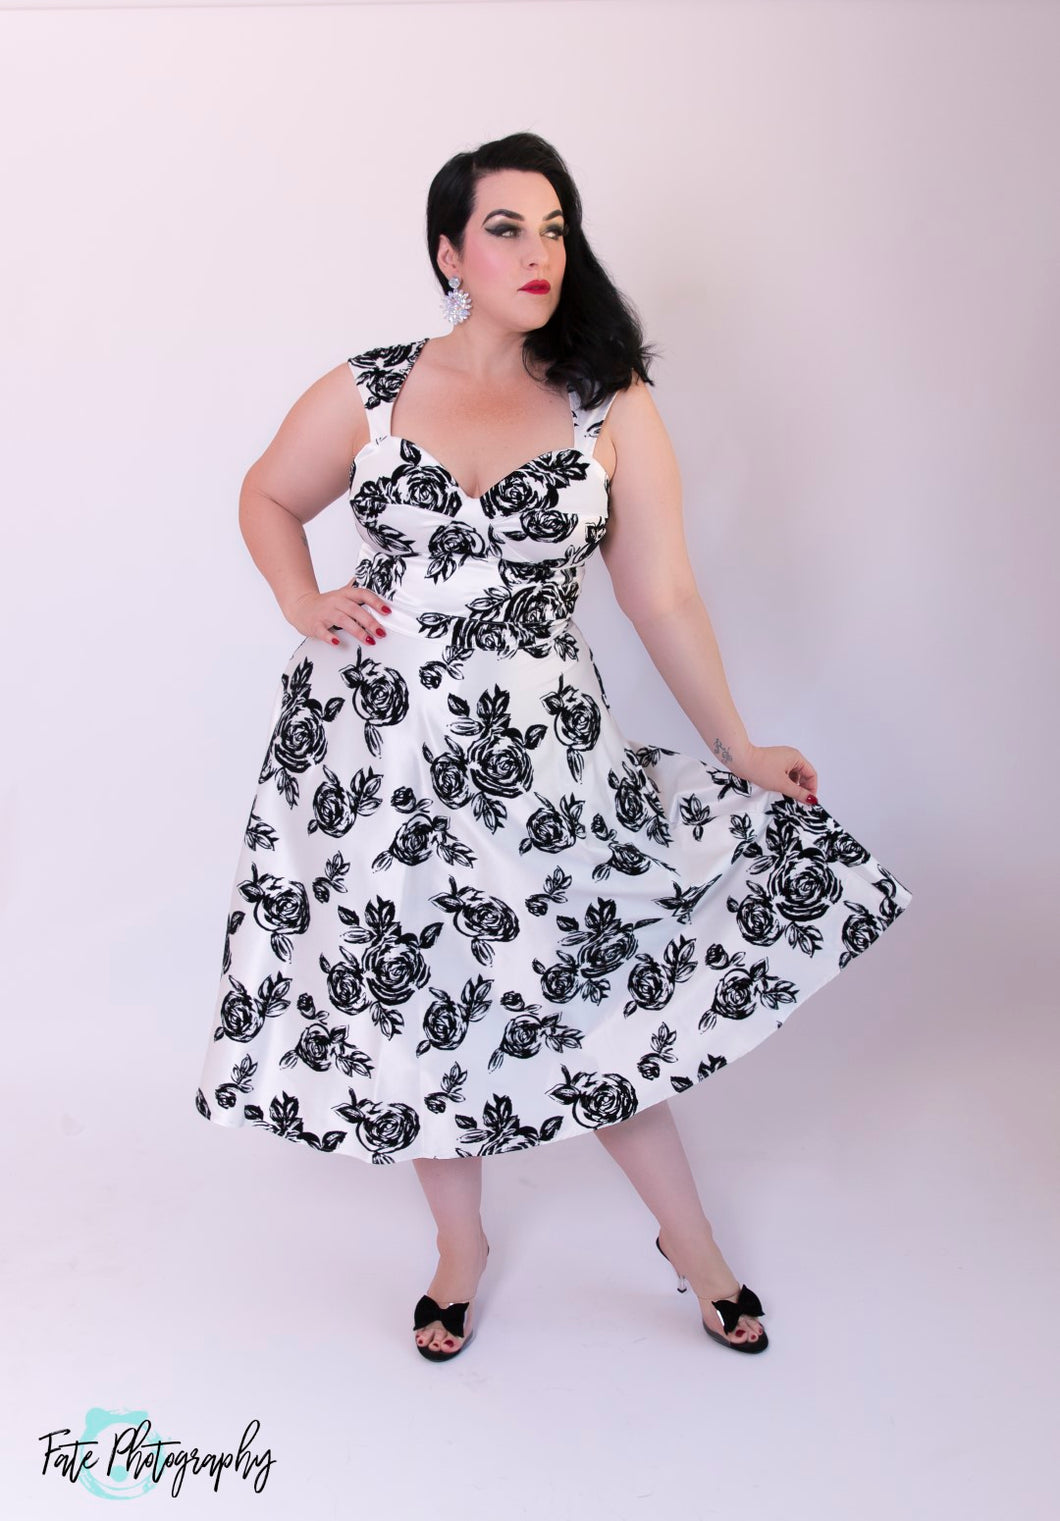 Bettie Page White with Black Floral Print Roman Holiday Dress - Curvique Vintage